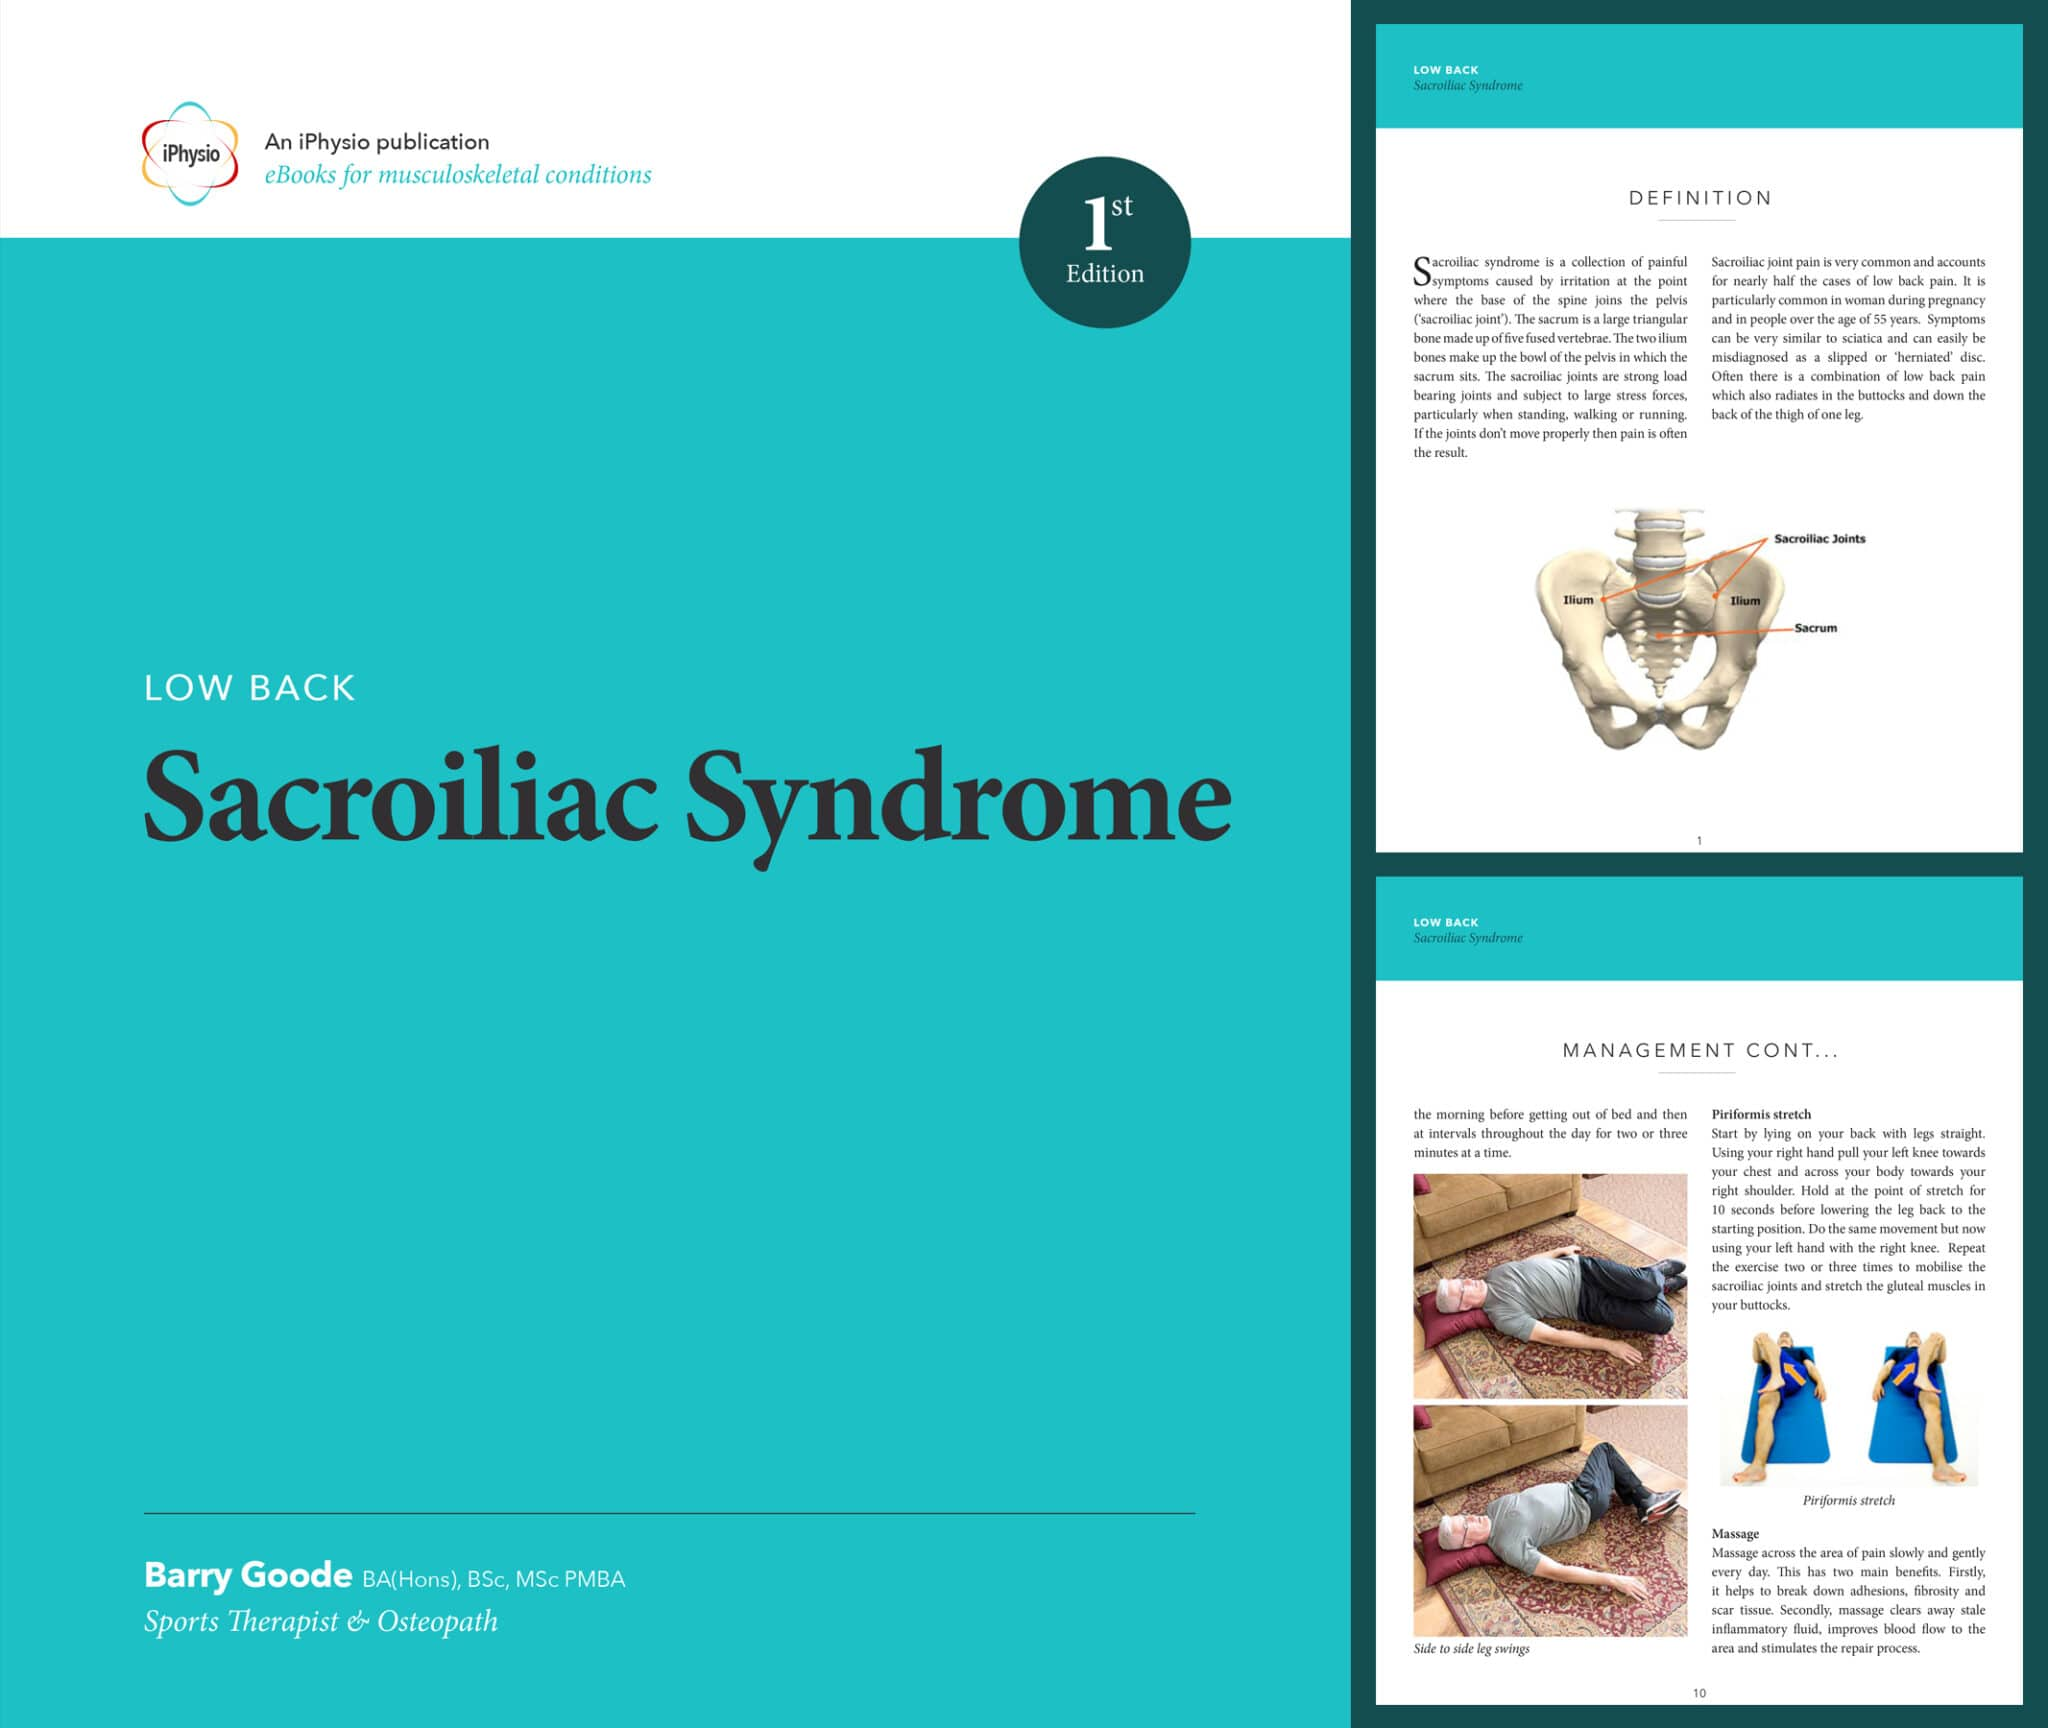 Sacroiliac Syndrome treatment advice